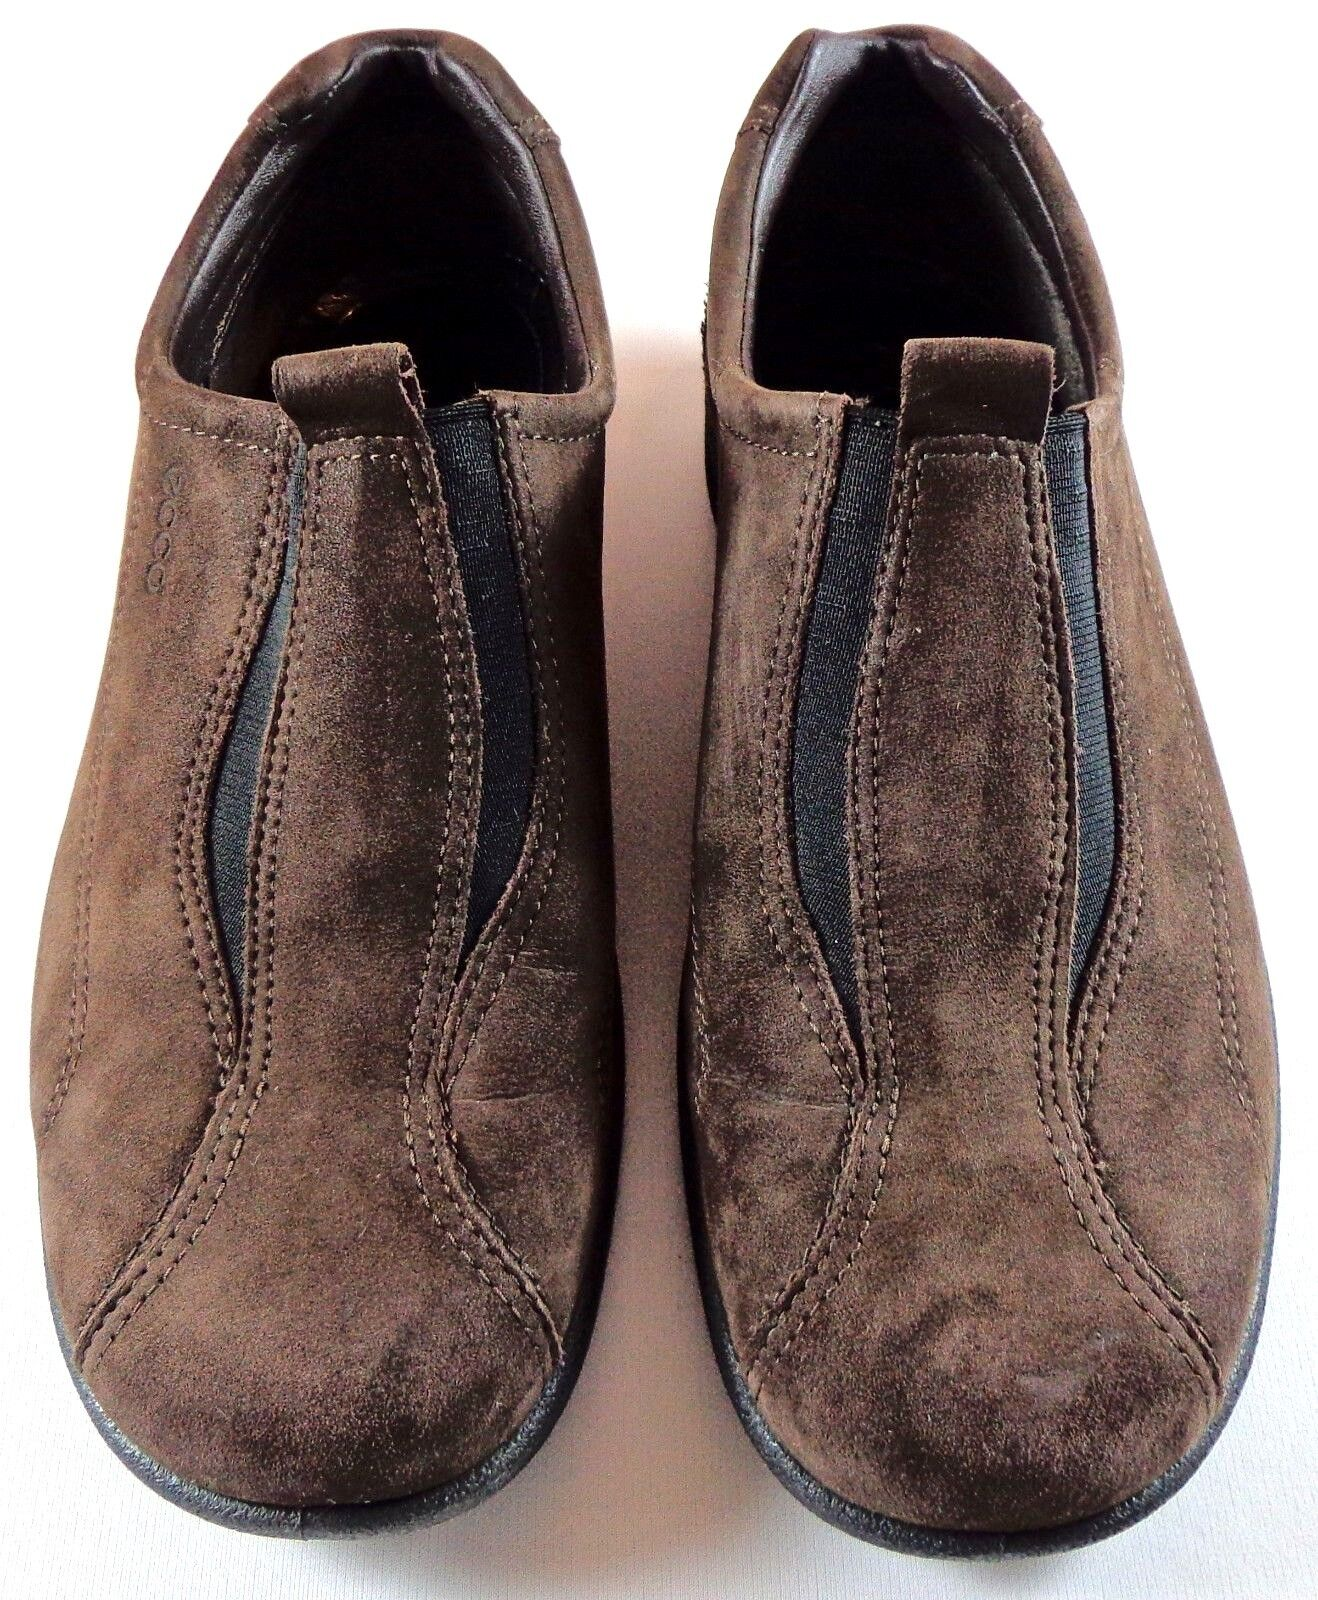 ECCO Brown Suede Loafers Donna Slip On Shoes Size 37 6.5